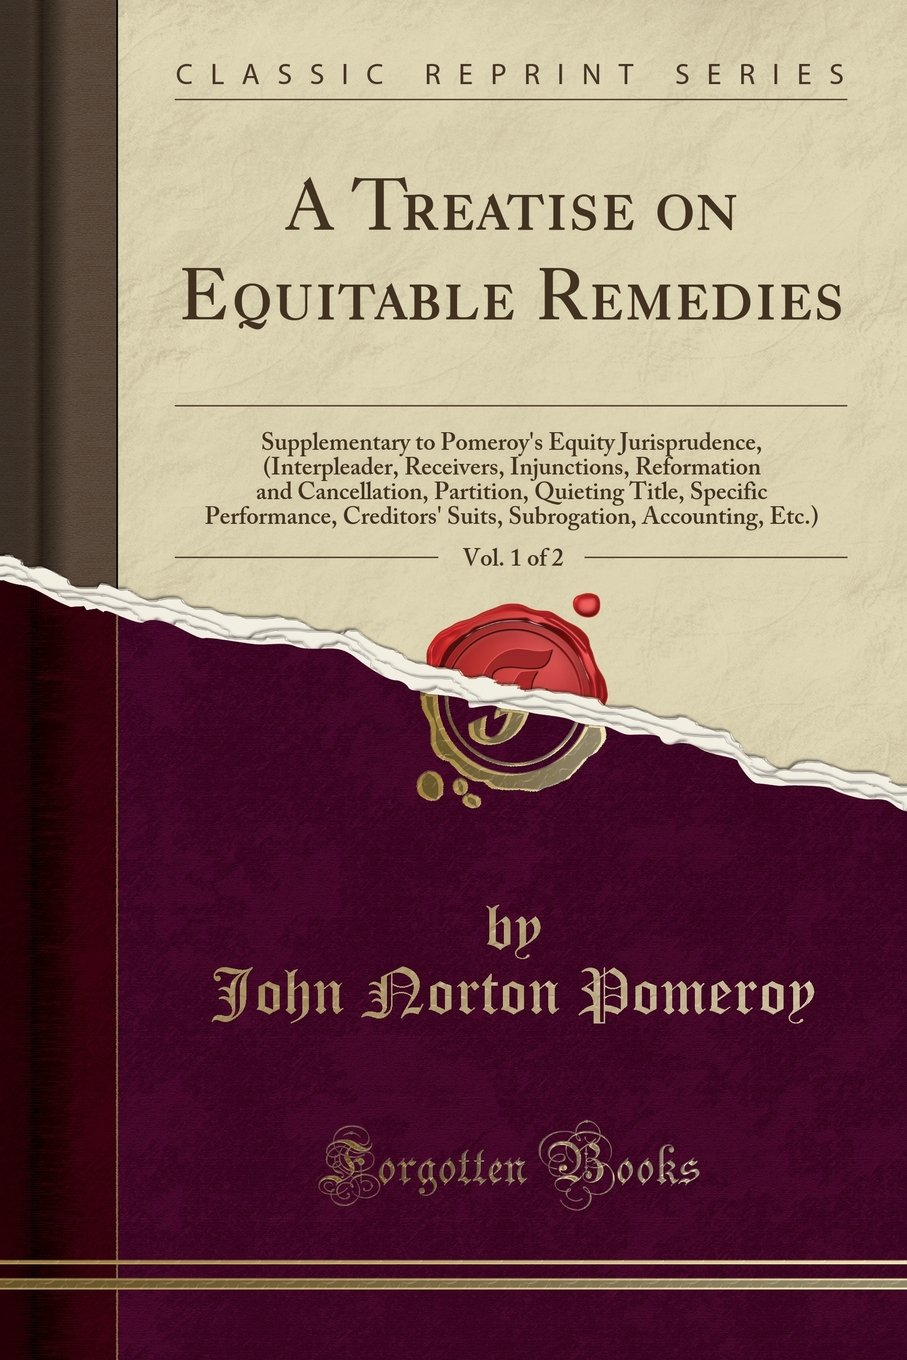 Read Online A Treatise on Equitable Remedies, Vol. 1 of 2: Supplementary to Pomeroy's Equity Jurisprudence, (Interpleader, Receivers, Injunctions, Reformation and ... Creditors' Suits, Subrogation, Accounting PDF